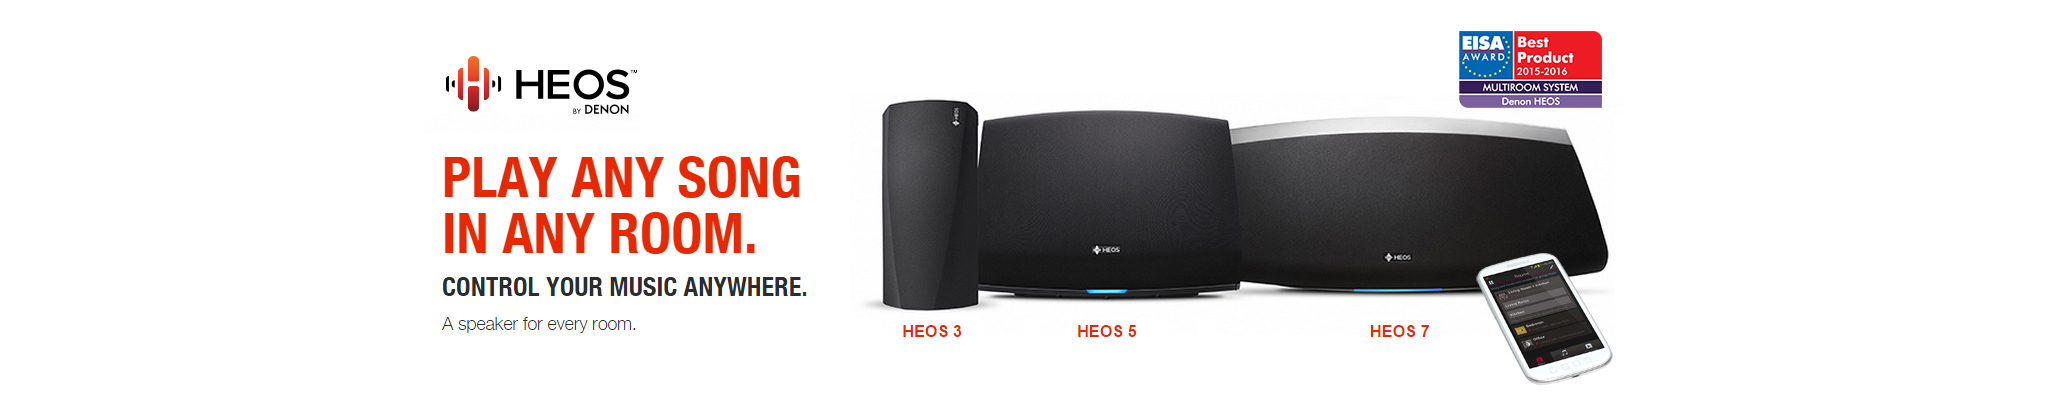 Play Any Song | HEOS by Denon | Wireless Multi-Room Speaker System